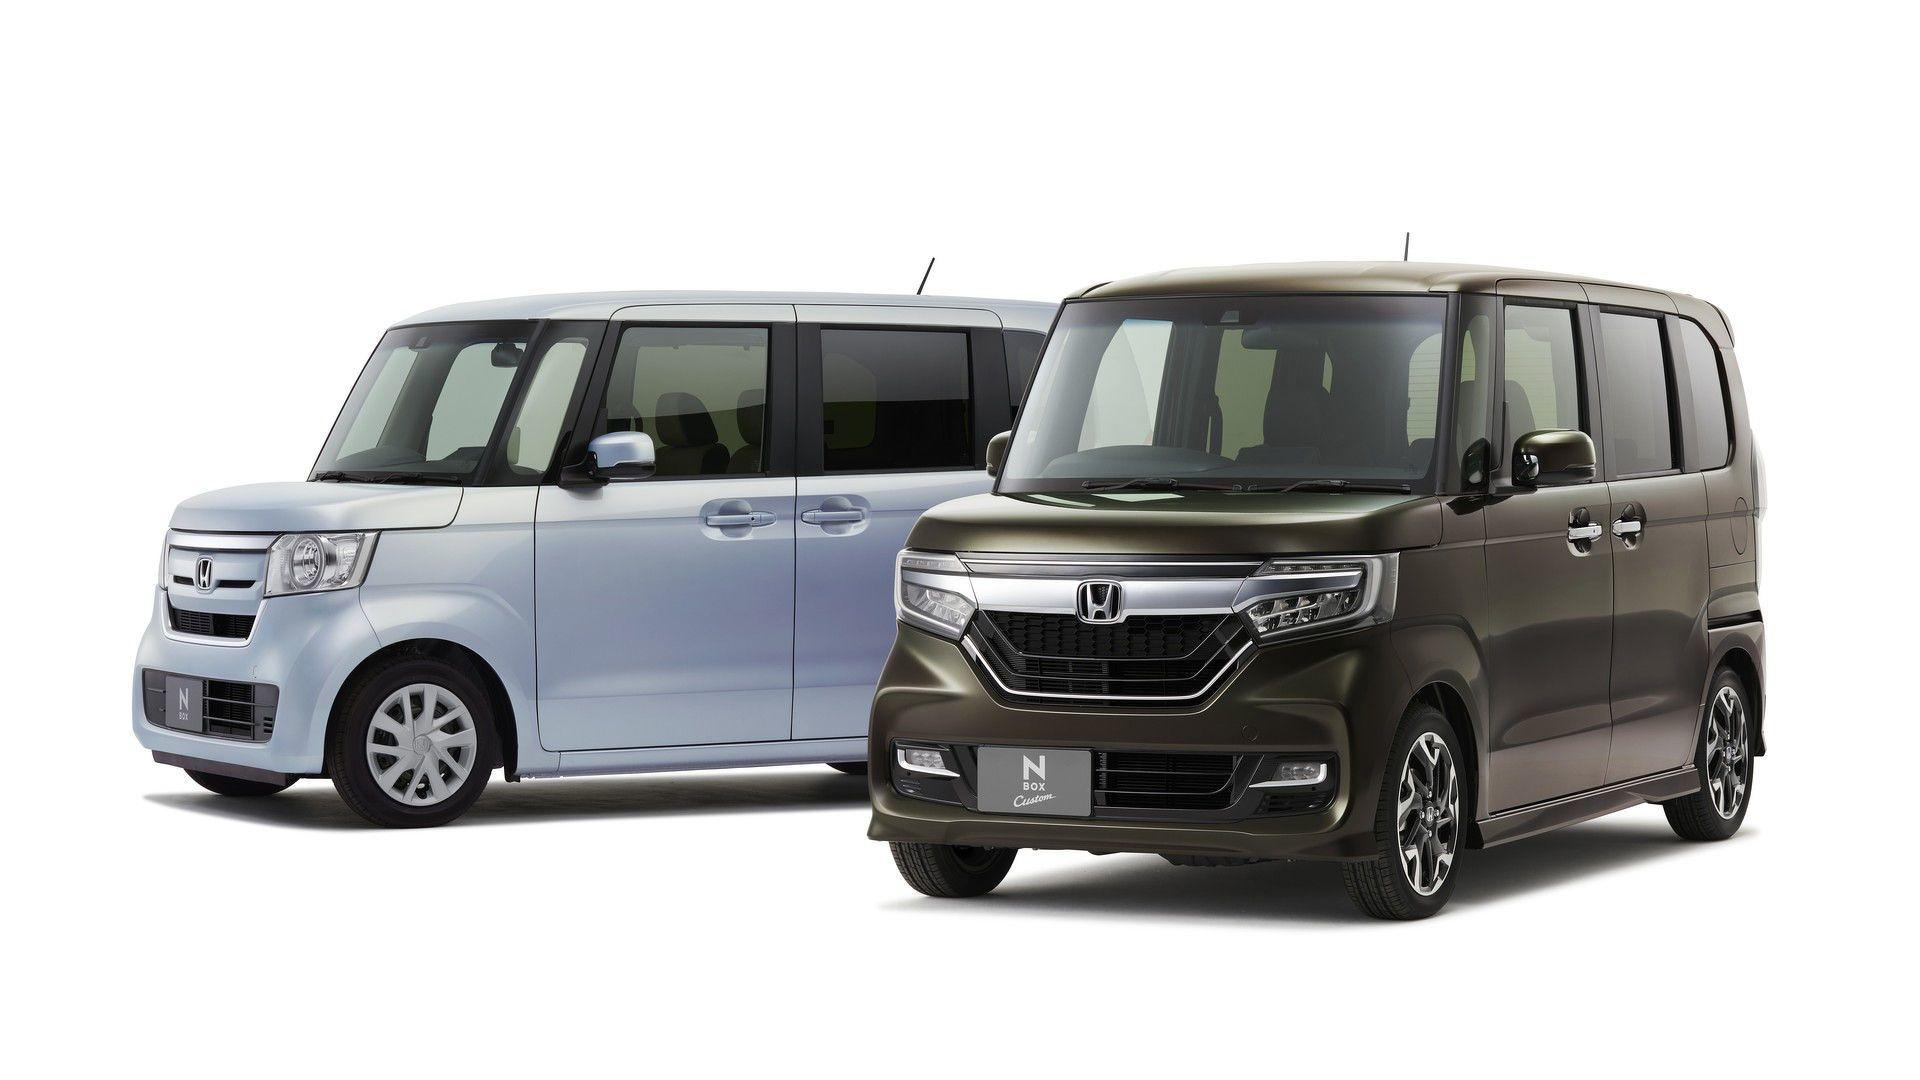 2018 Honda N-Box Is An Unapologetically Boxy Kei Car